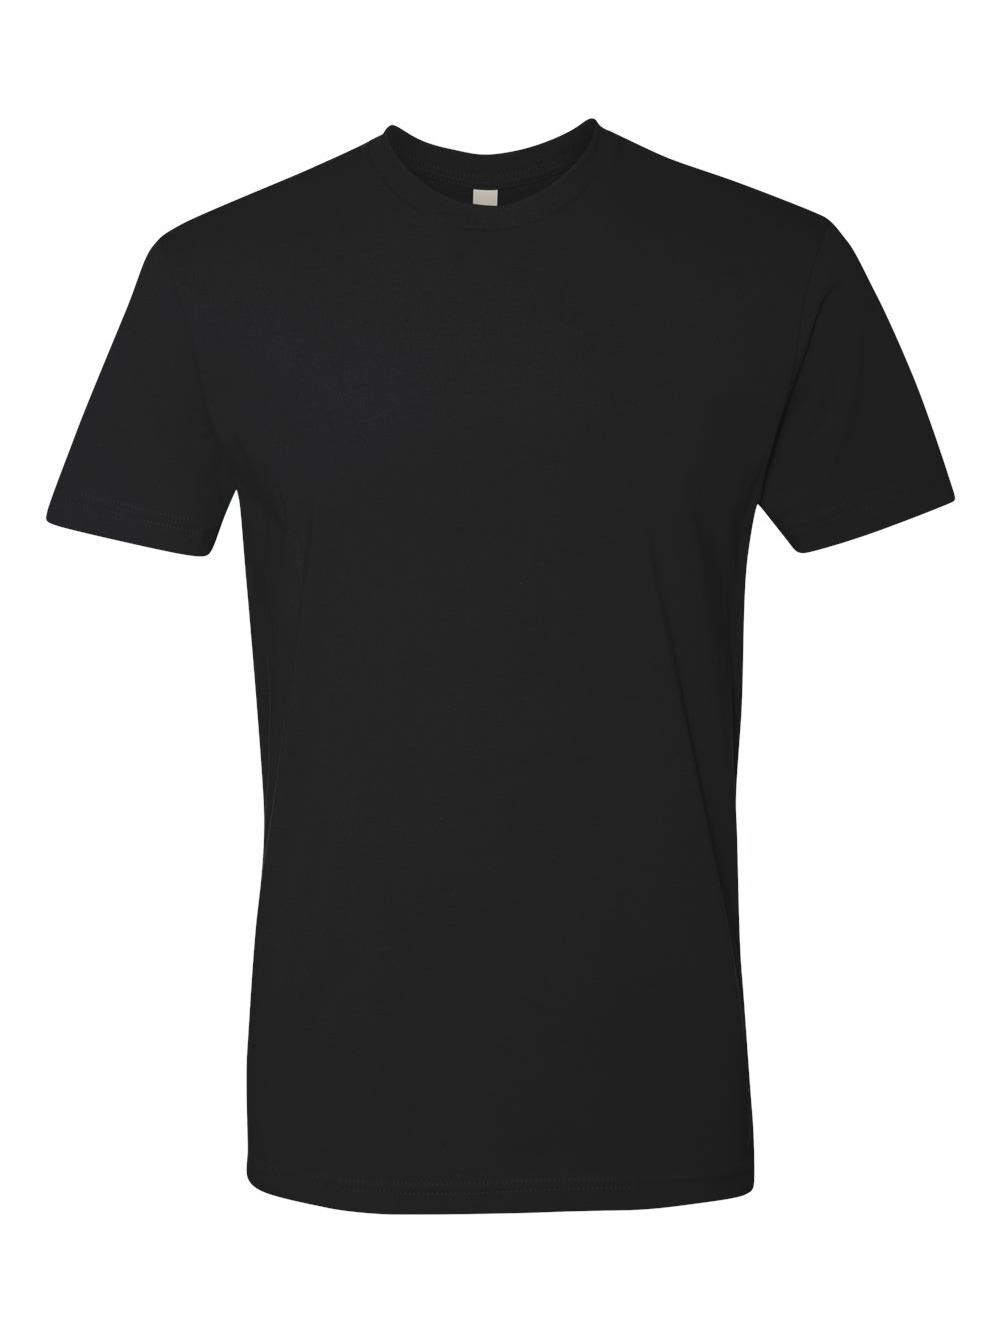 997822f66af4 Next Level Mens Premium Fitted Short Sleeve Crew T Shirt 3600 Xs-3xl ...